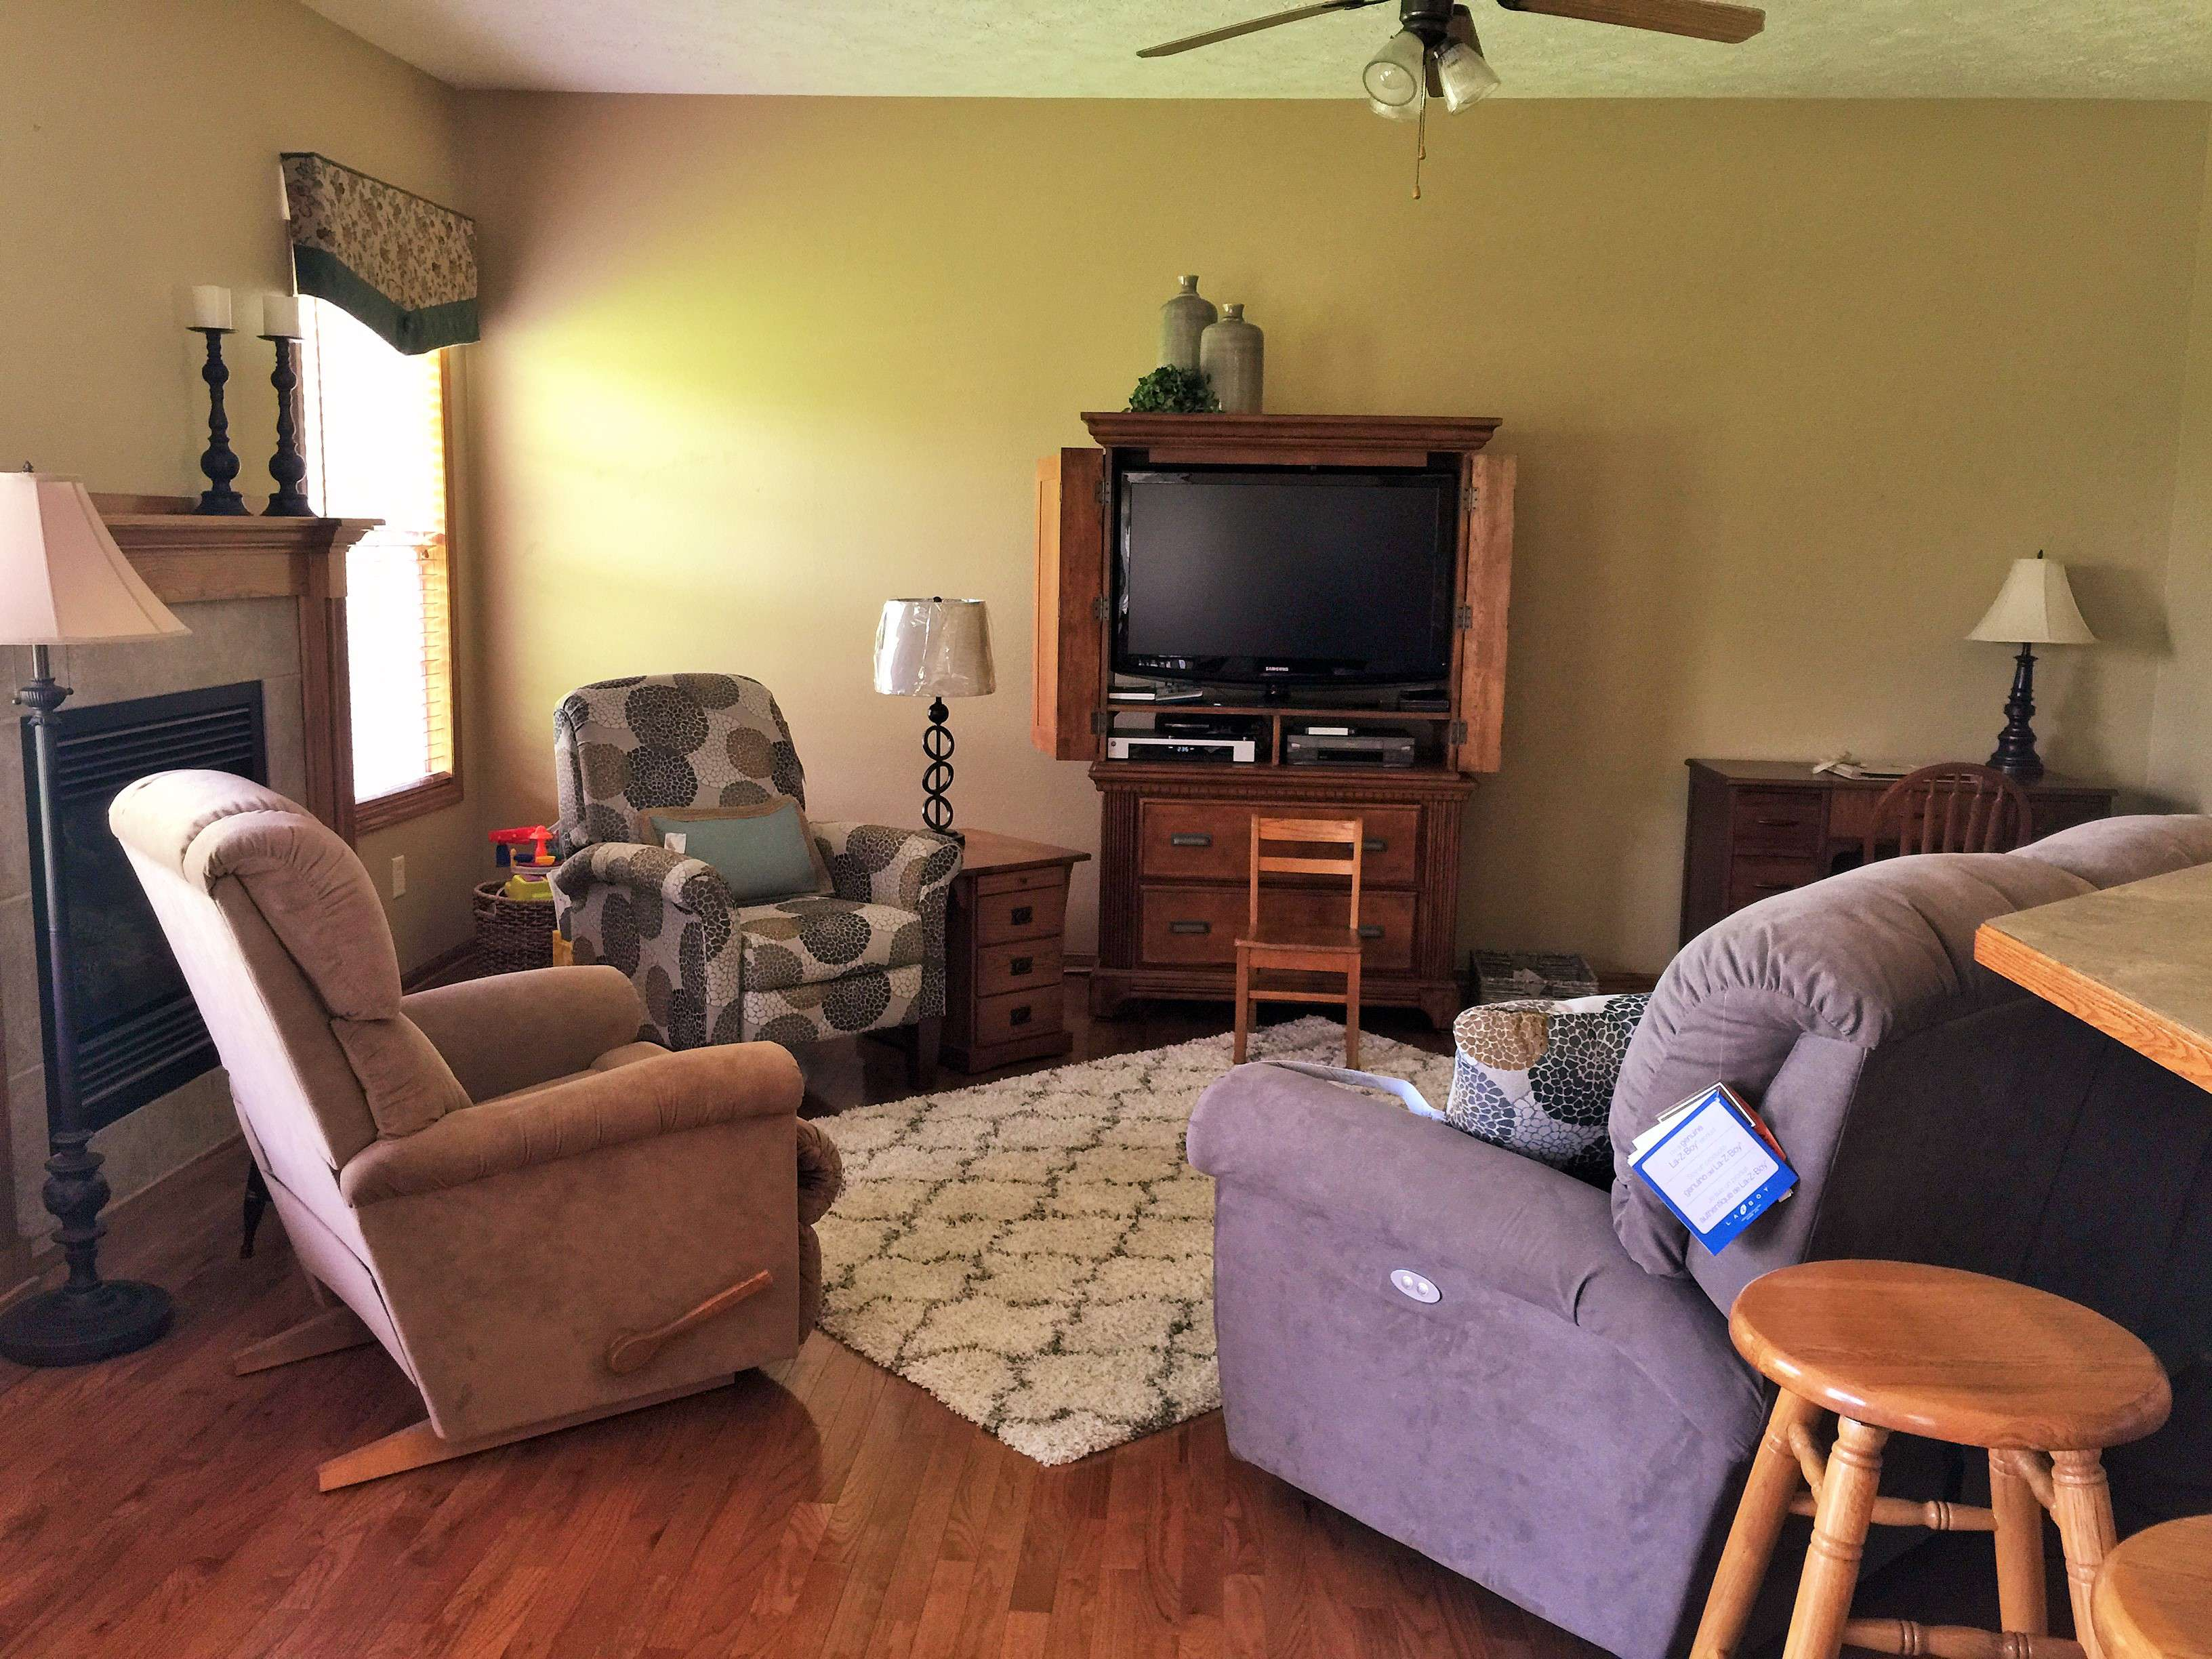 La Z Boy Living Room Set Furniture La Z Boy Sofas Chairs Recliners And Couches Find A